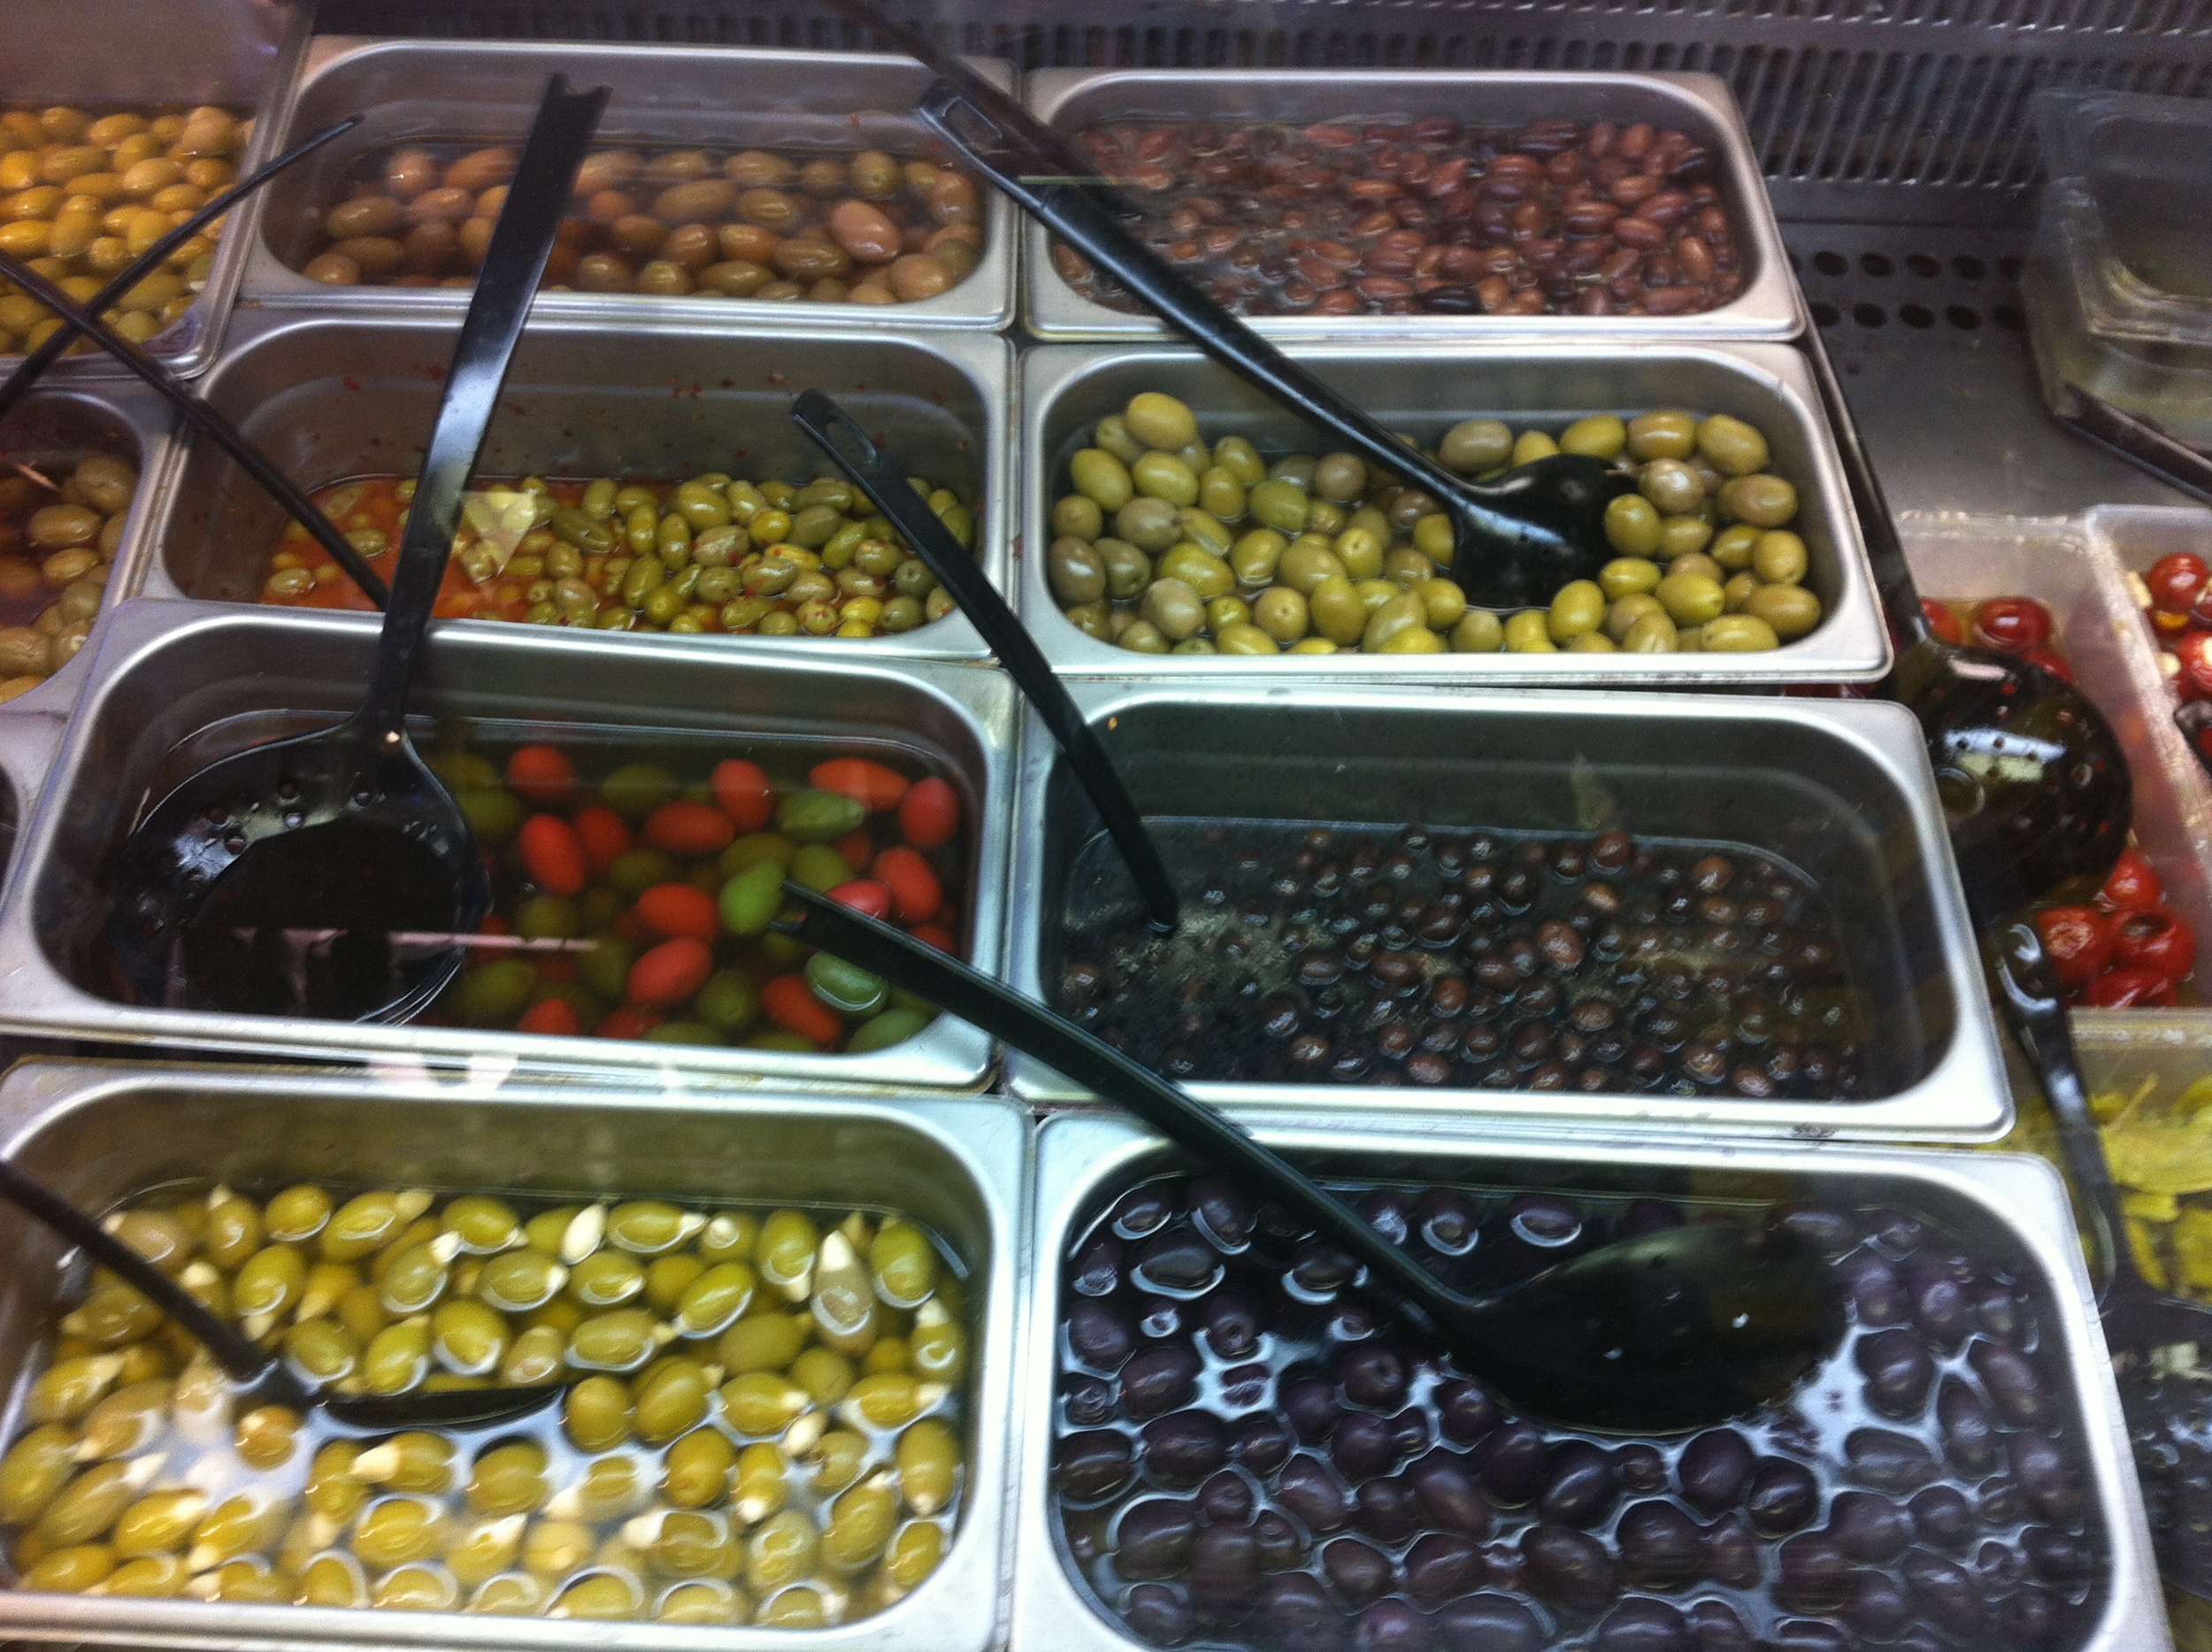 Of course Kalmata has olives.